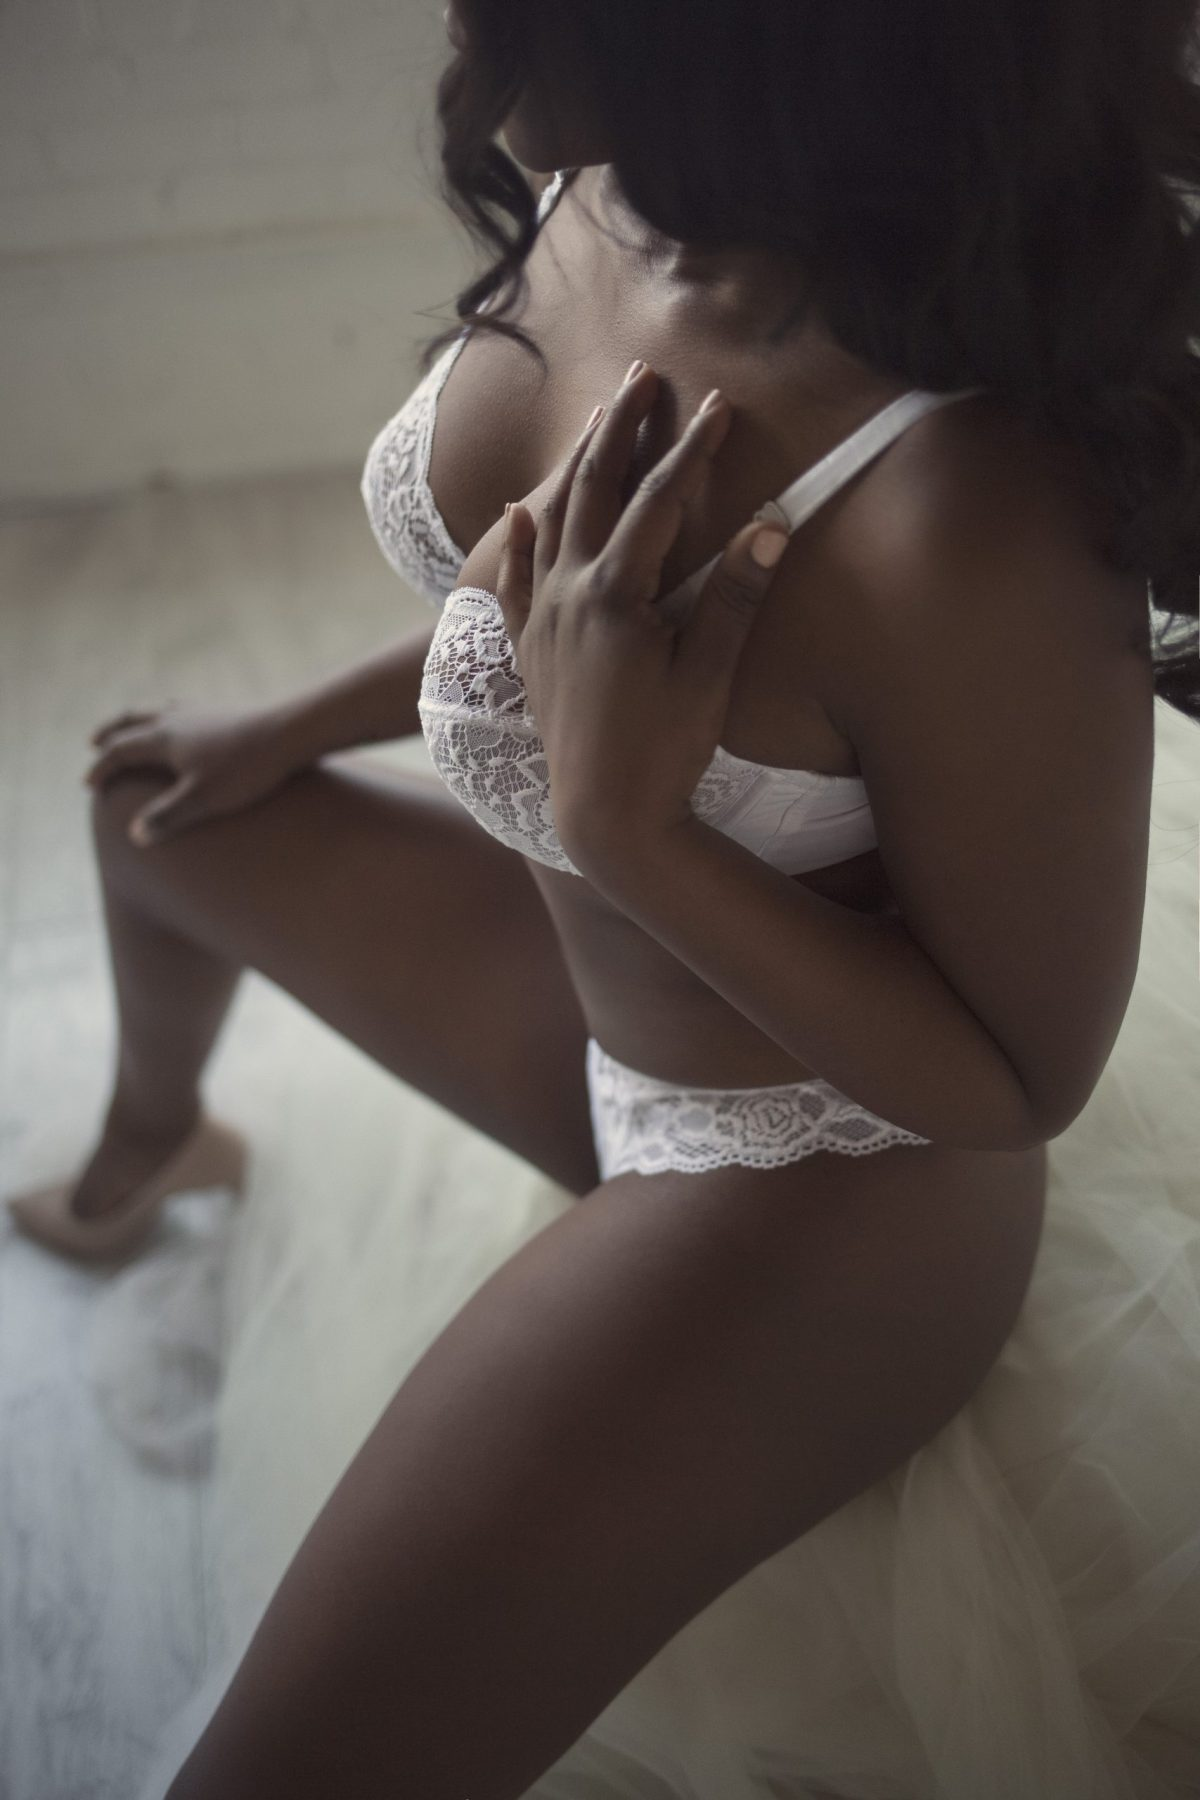 Toronto escorts companion upscale Alisha Interests Duo Couple-friendly Disability-friendly Non-smoking Age Young Figure Curvy Petite Breasts Natural Hair Raven-Haired Ethnicity Black Tattoos Small Arrival New